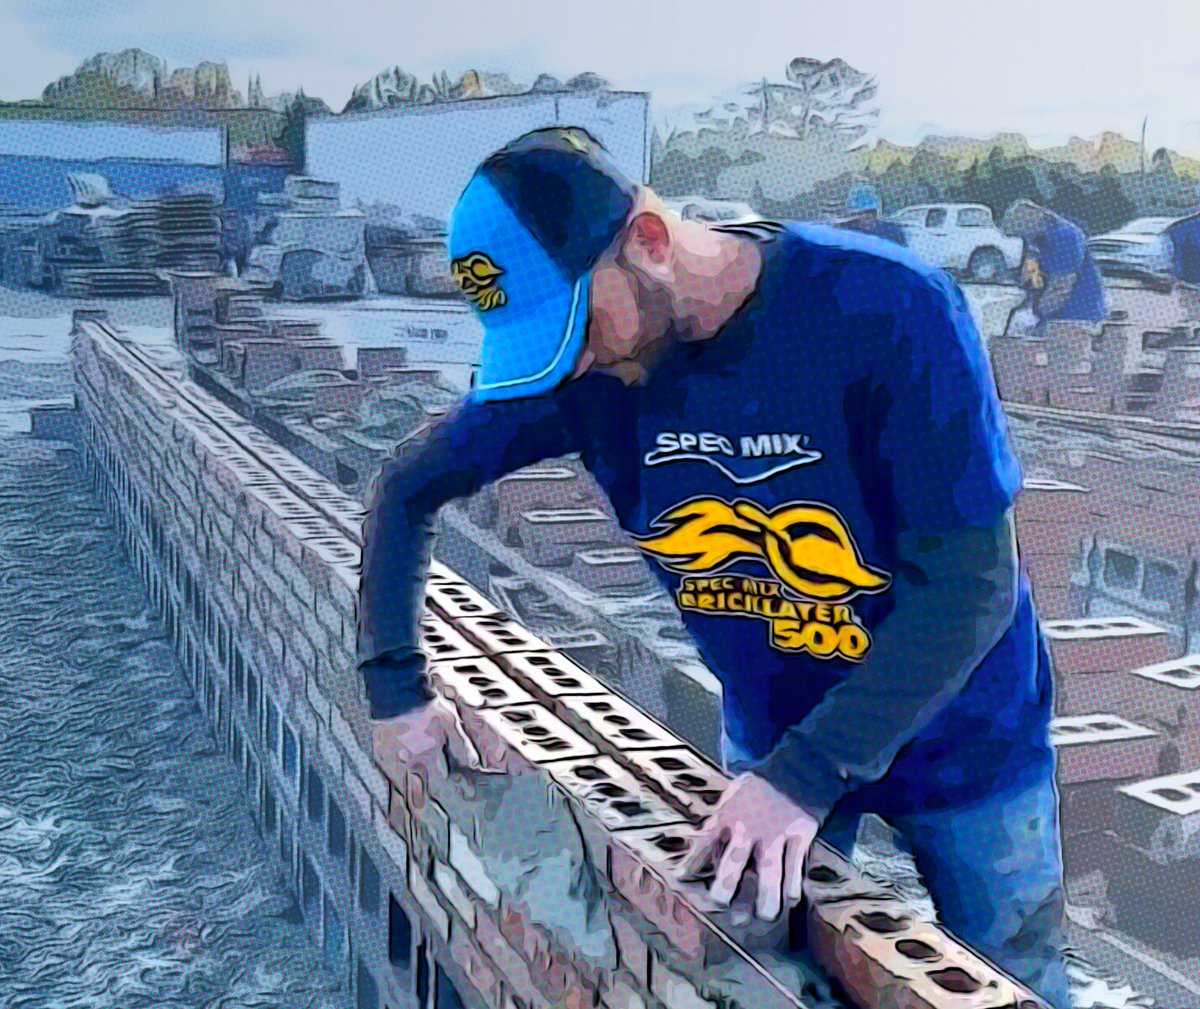 20 MINUTES LEFT!   Watch LIVE here: https://t.co/X90MmMJ5rS  #masonry #bricklayer #smbl500 #masonrystrong https://t.co/HG18FZgR4F